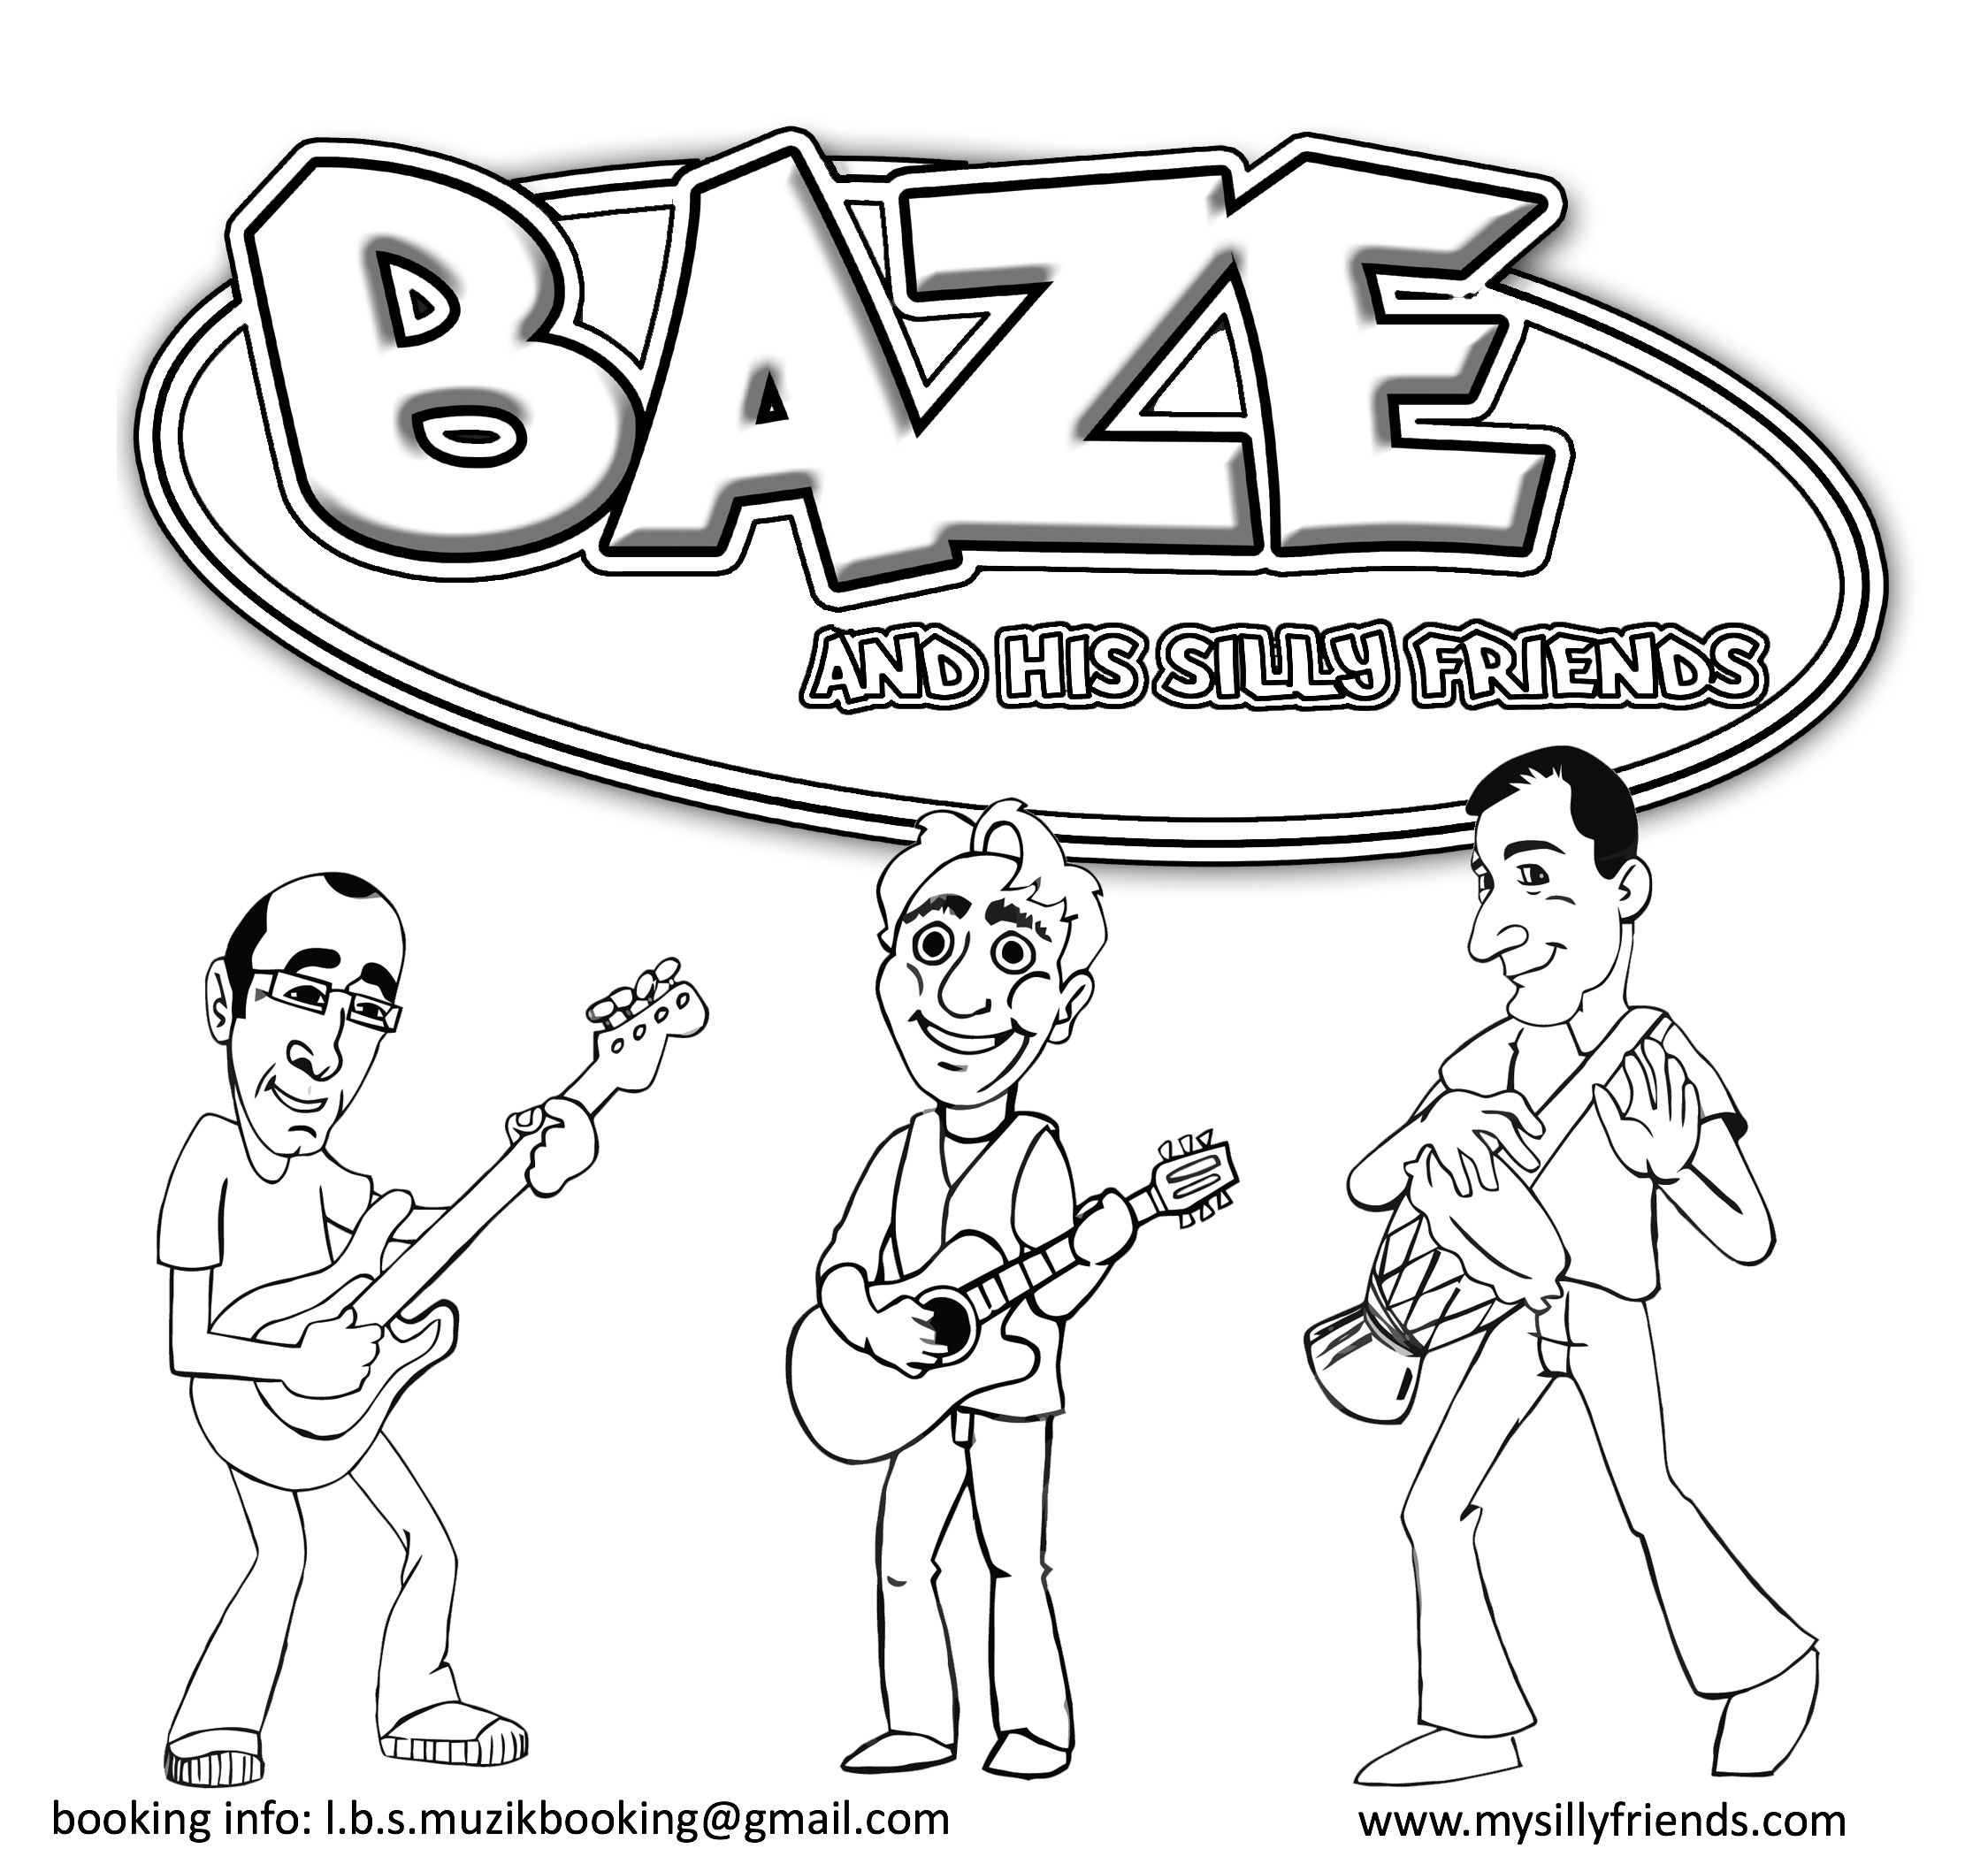 Coloring Pages Family Fun | Baze and His Silly Friends